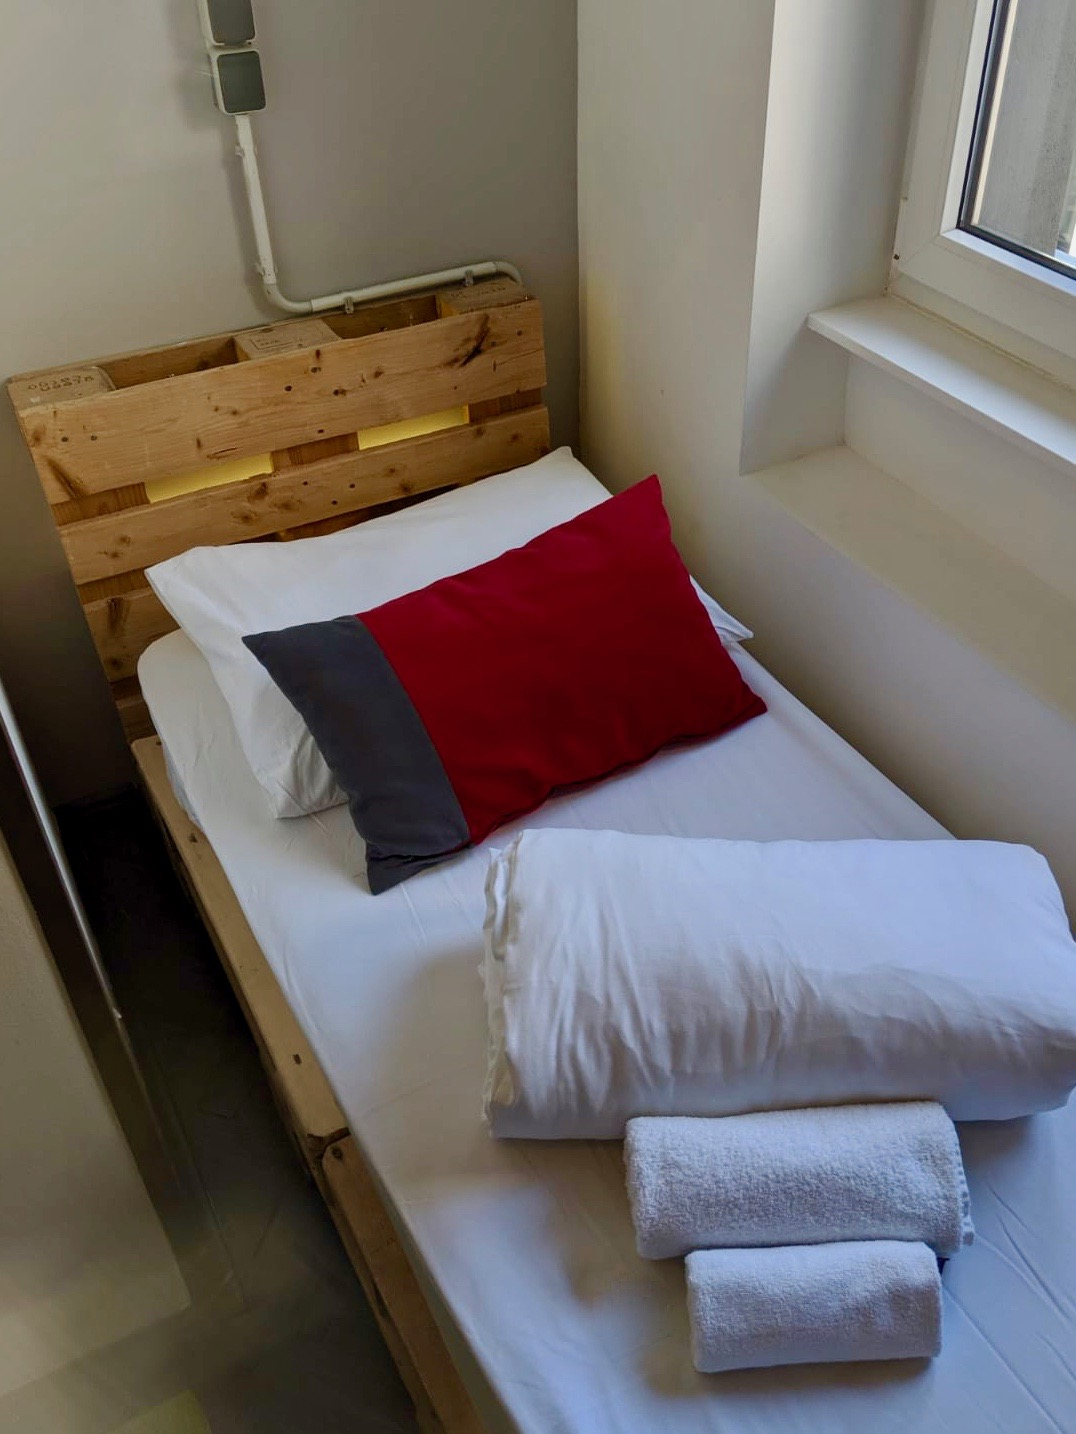 swanky mint hostel zagreb review: single bed